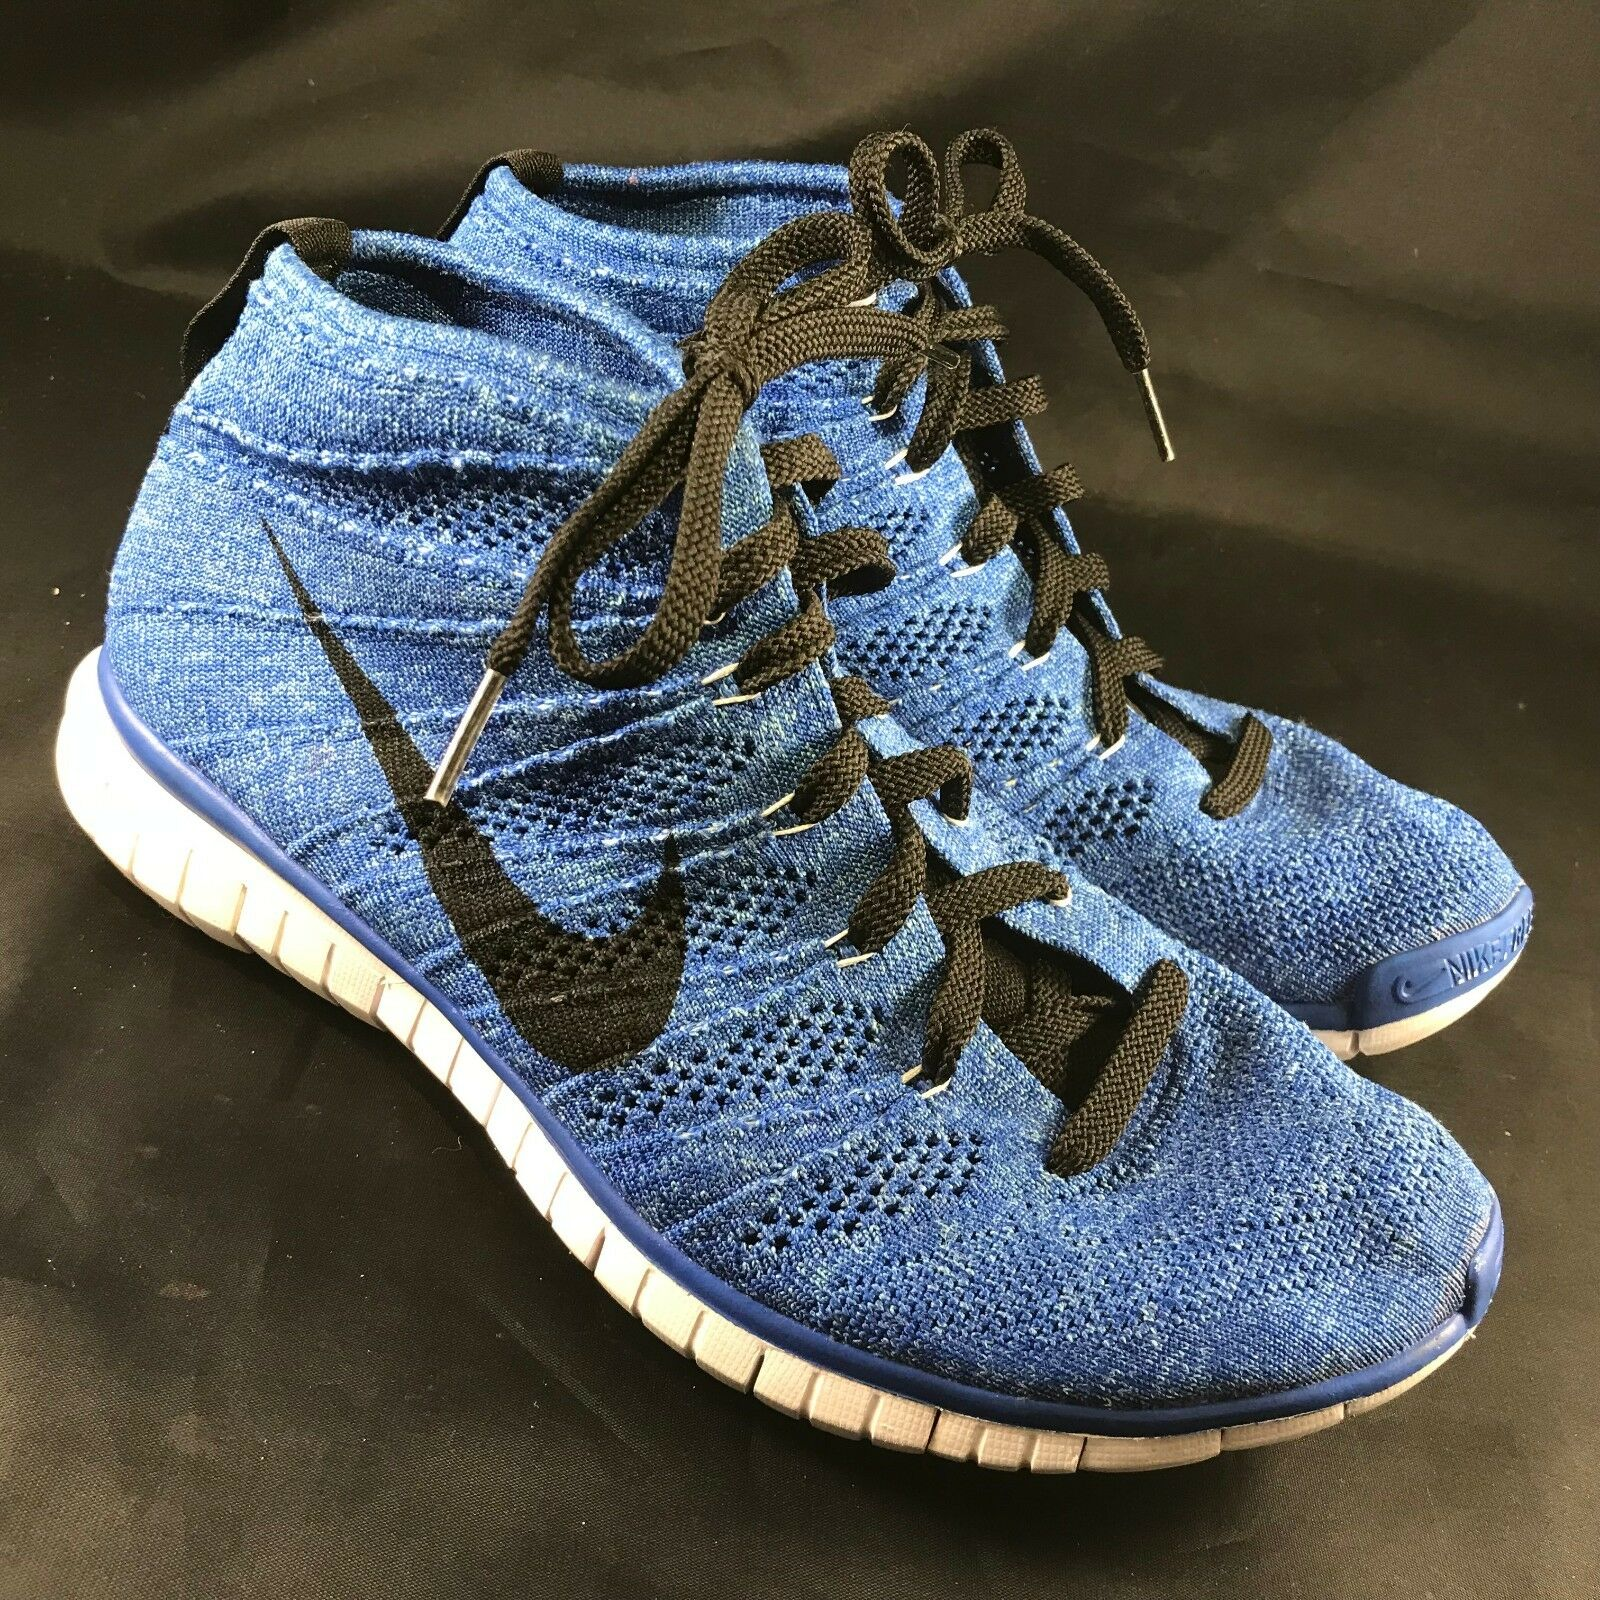 Nike Free Flyknit Chukka Game Royal bluee Black White SZ 9.5 (639700-403) 43 EUR